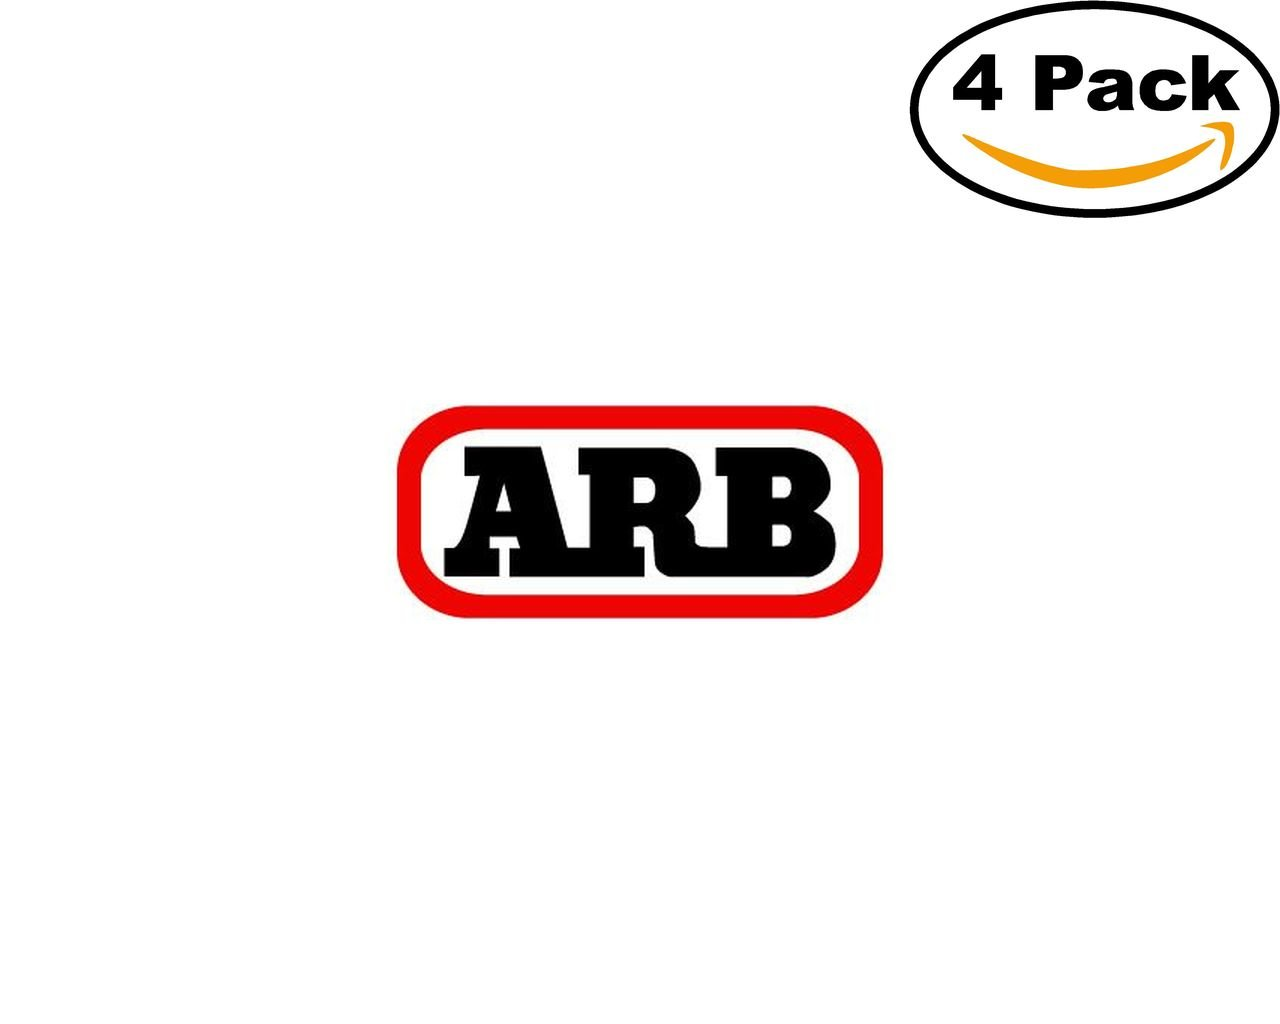 arb 4 Stickers 4x4 Inches Car Bumper Window Sticker Decal canvasbylam